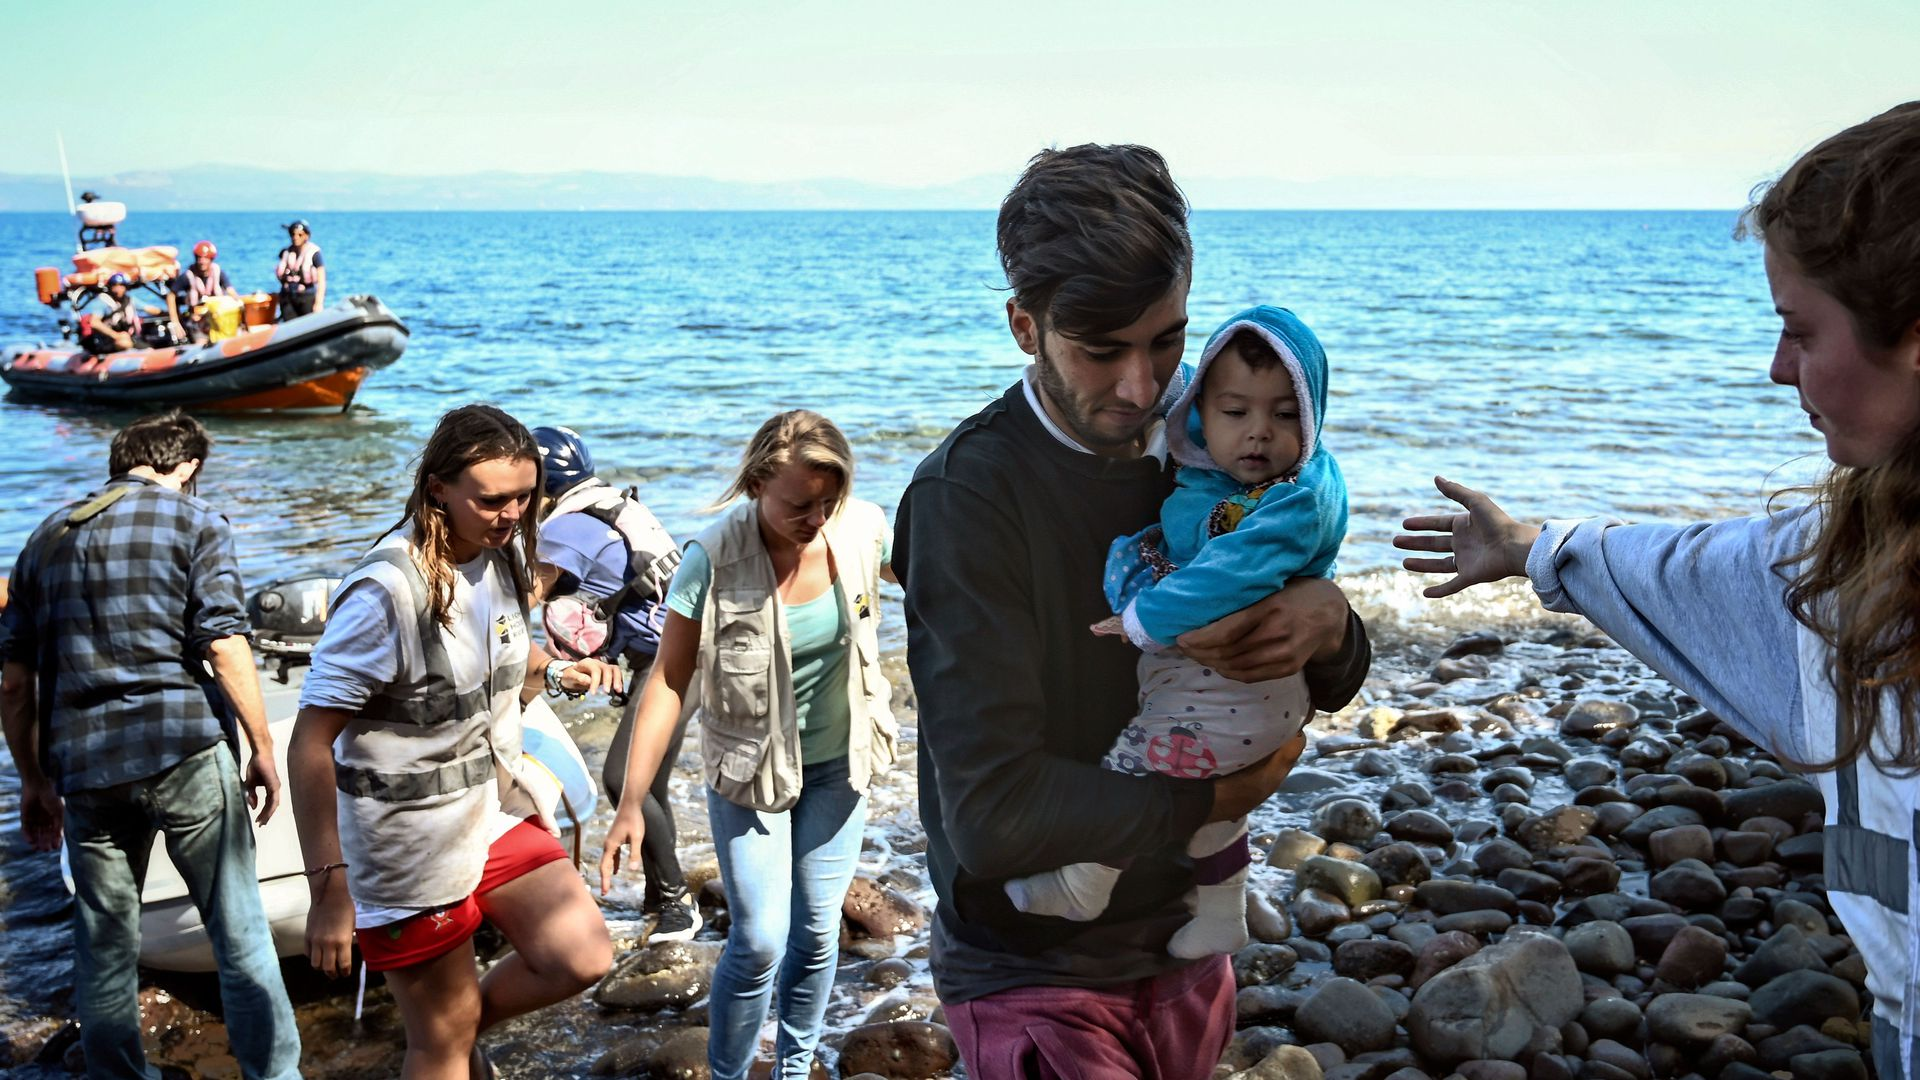 Migrants with a child, helped by rescuers arrive on the Greek island of Lesbos after crossing the Aegean Sea from Turkey